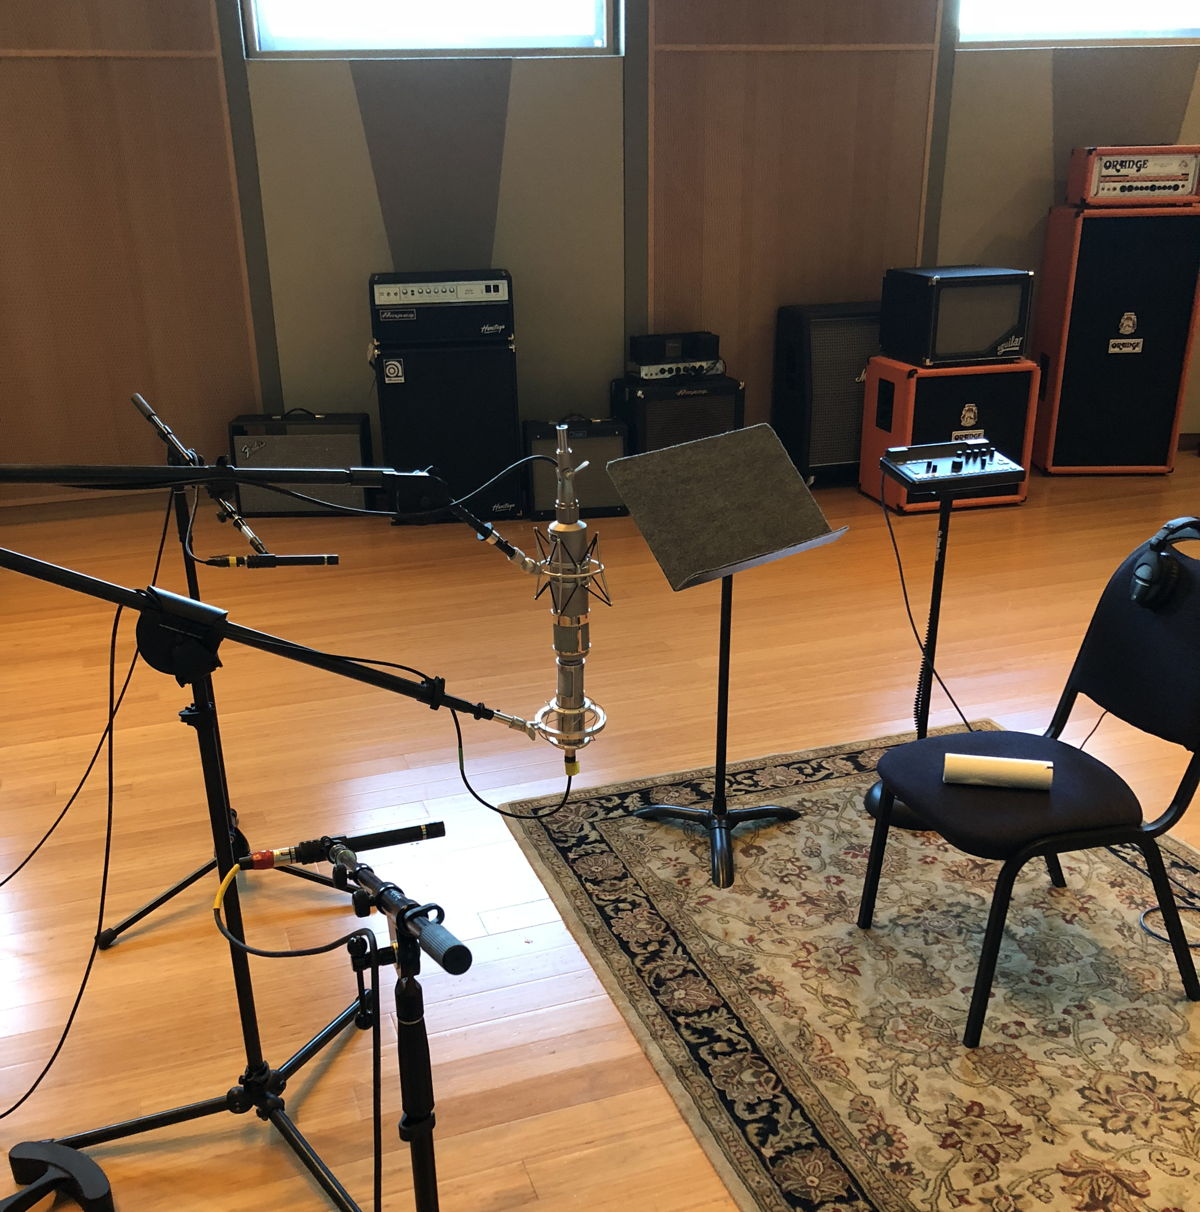 Martin miked Holcomb's guitar with a spaced pair of DPA 4011 microphones as well as a Telefunken U47 and a Shure 353.